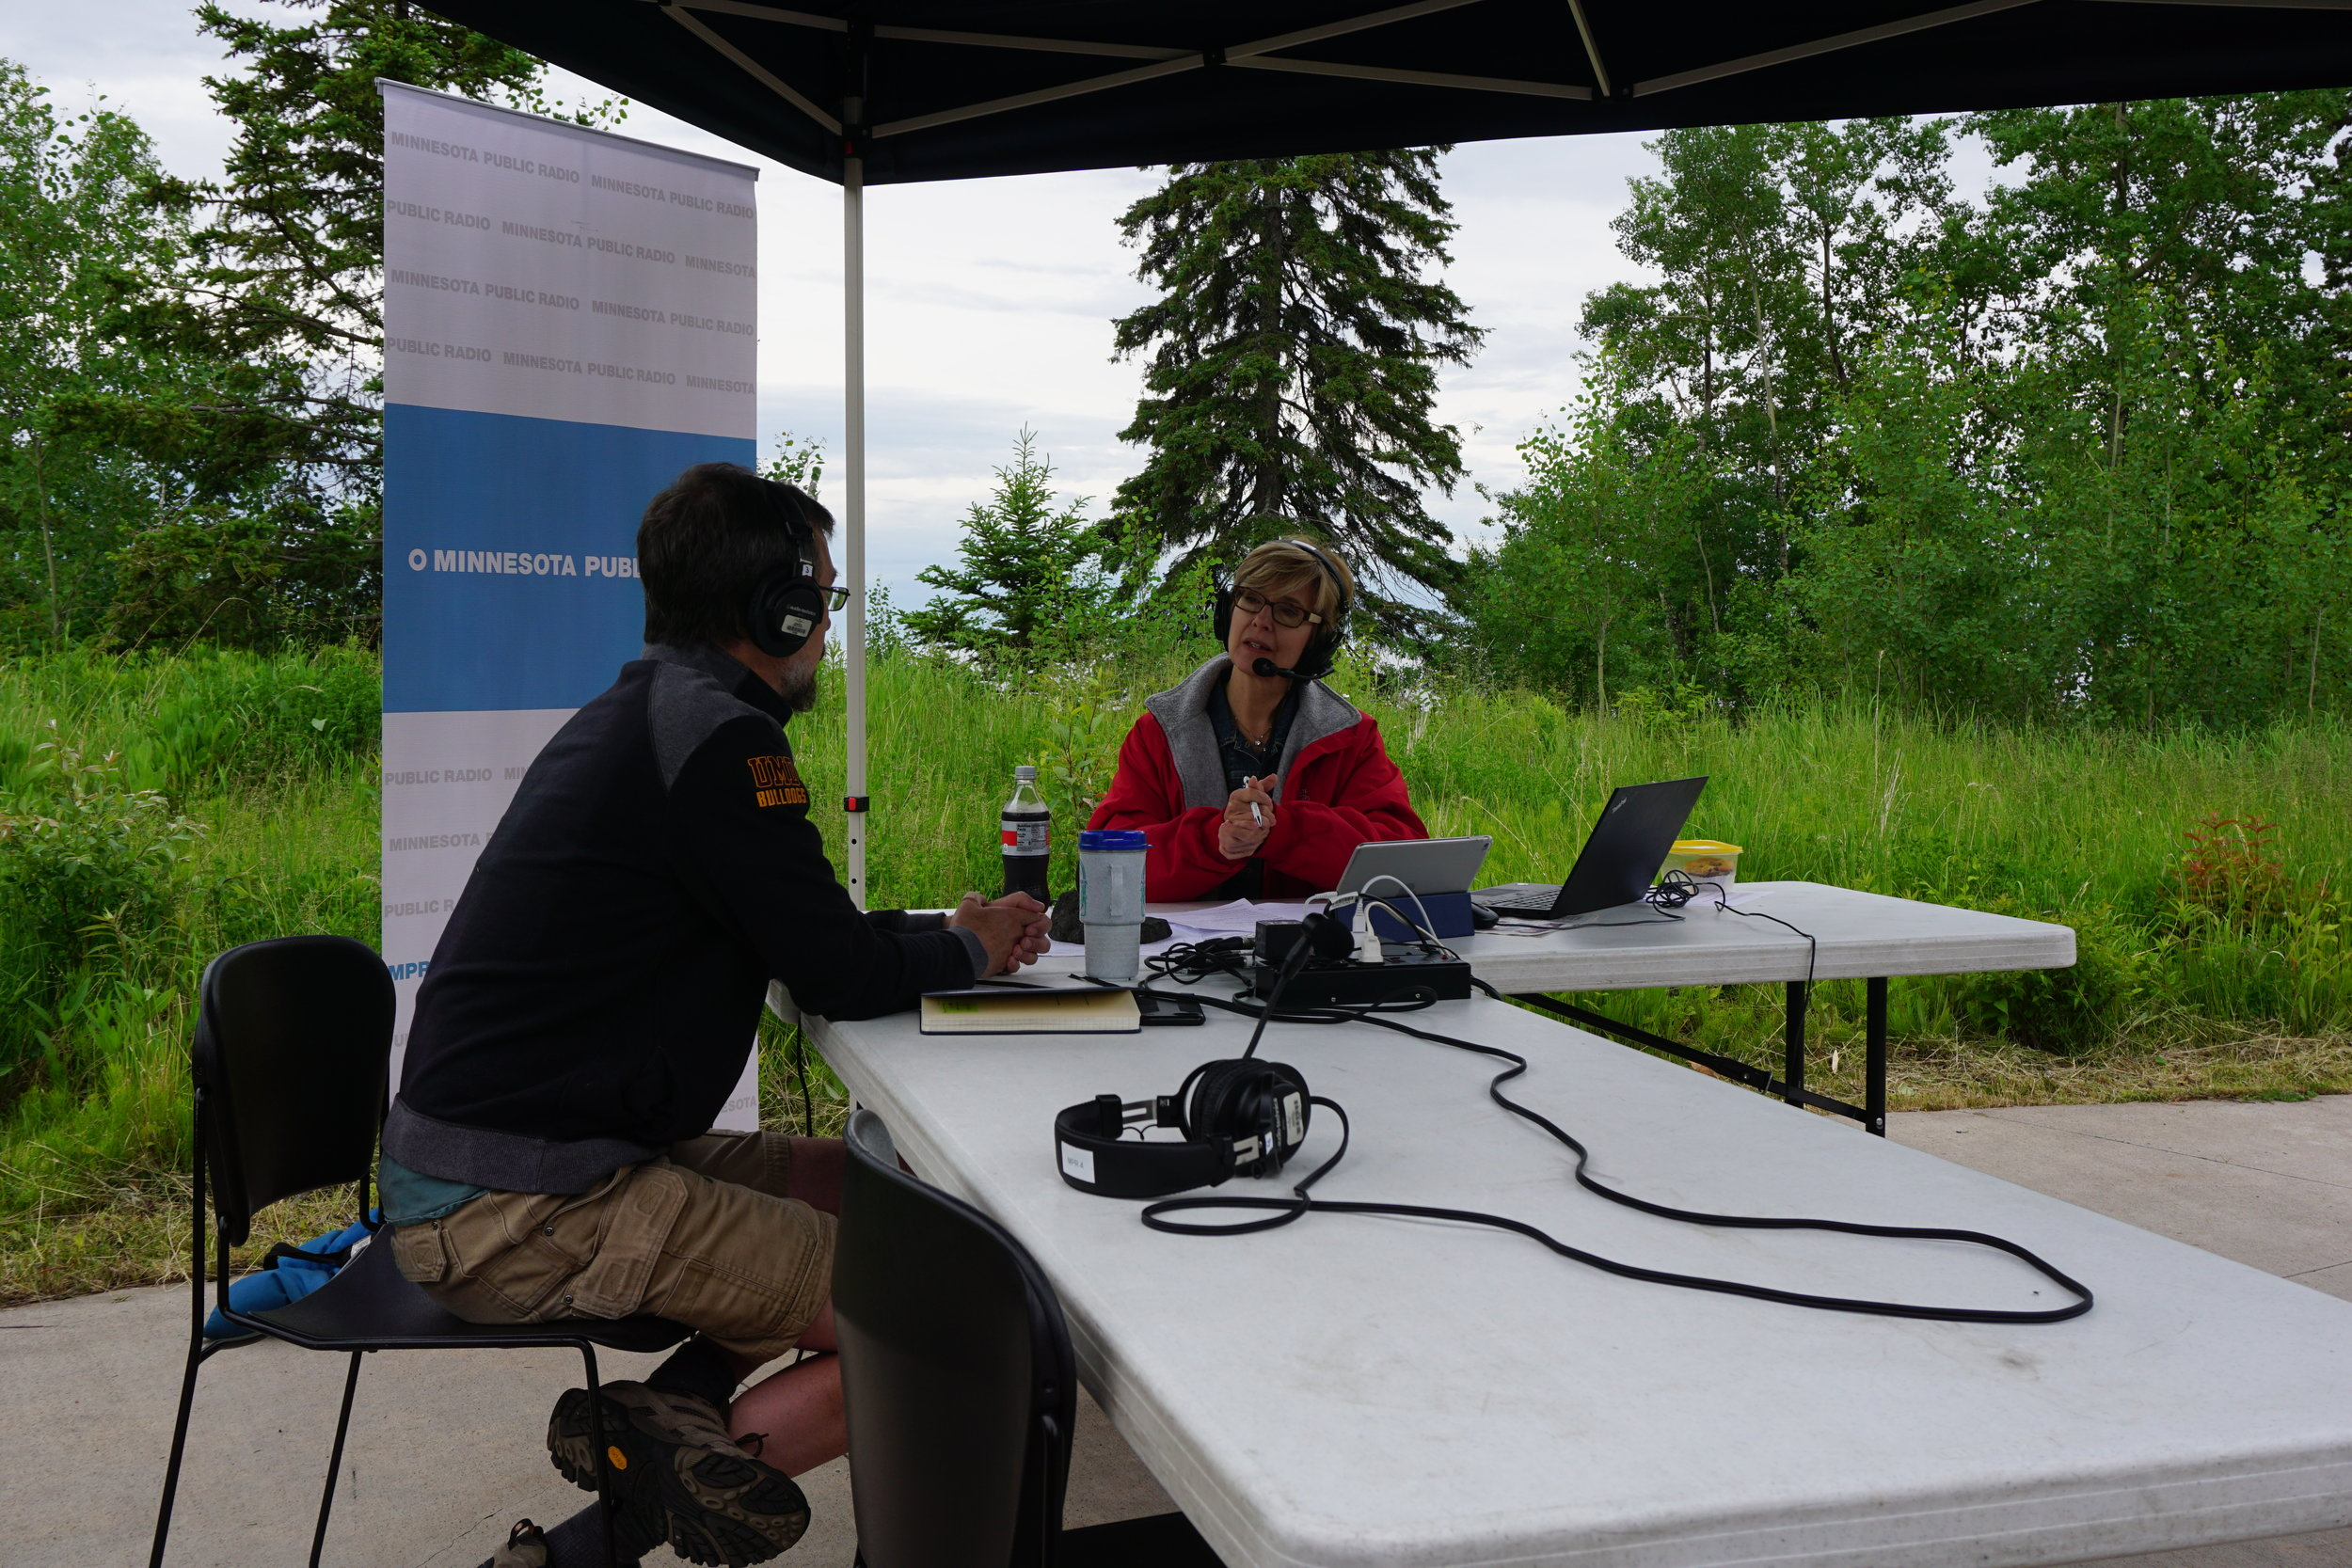 Morning Edition host Kathy Wurzer conducts an interview at Tettegouche State Park on the shore of Lake Superior.  Lauren Humpert   The Water Main